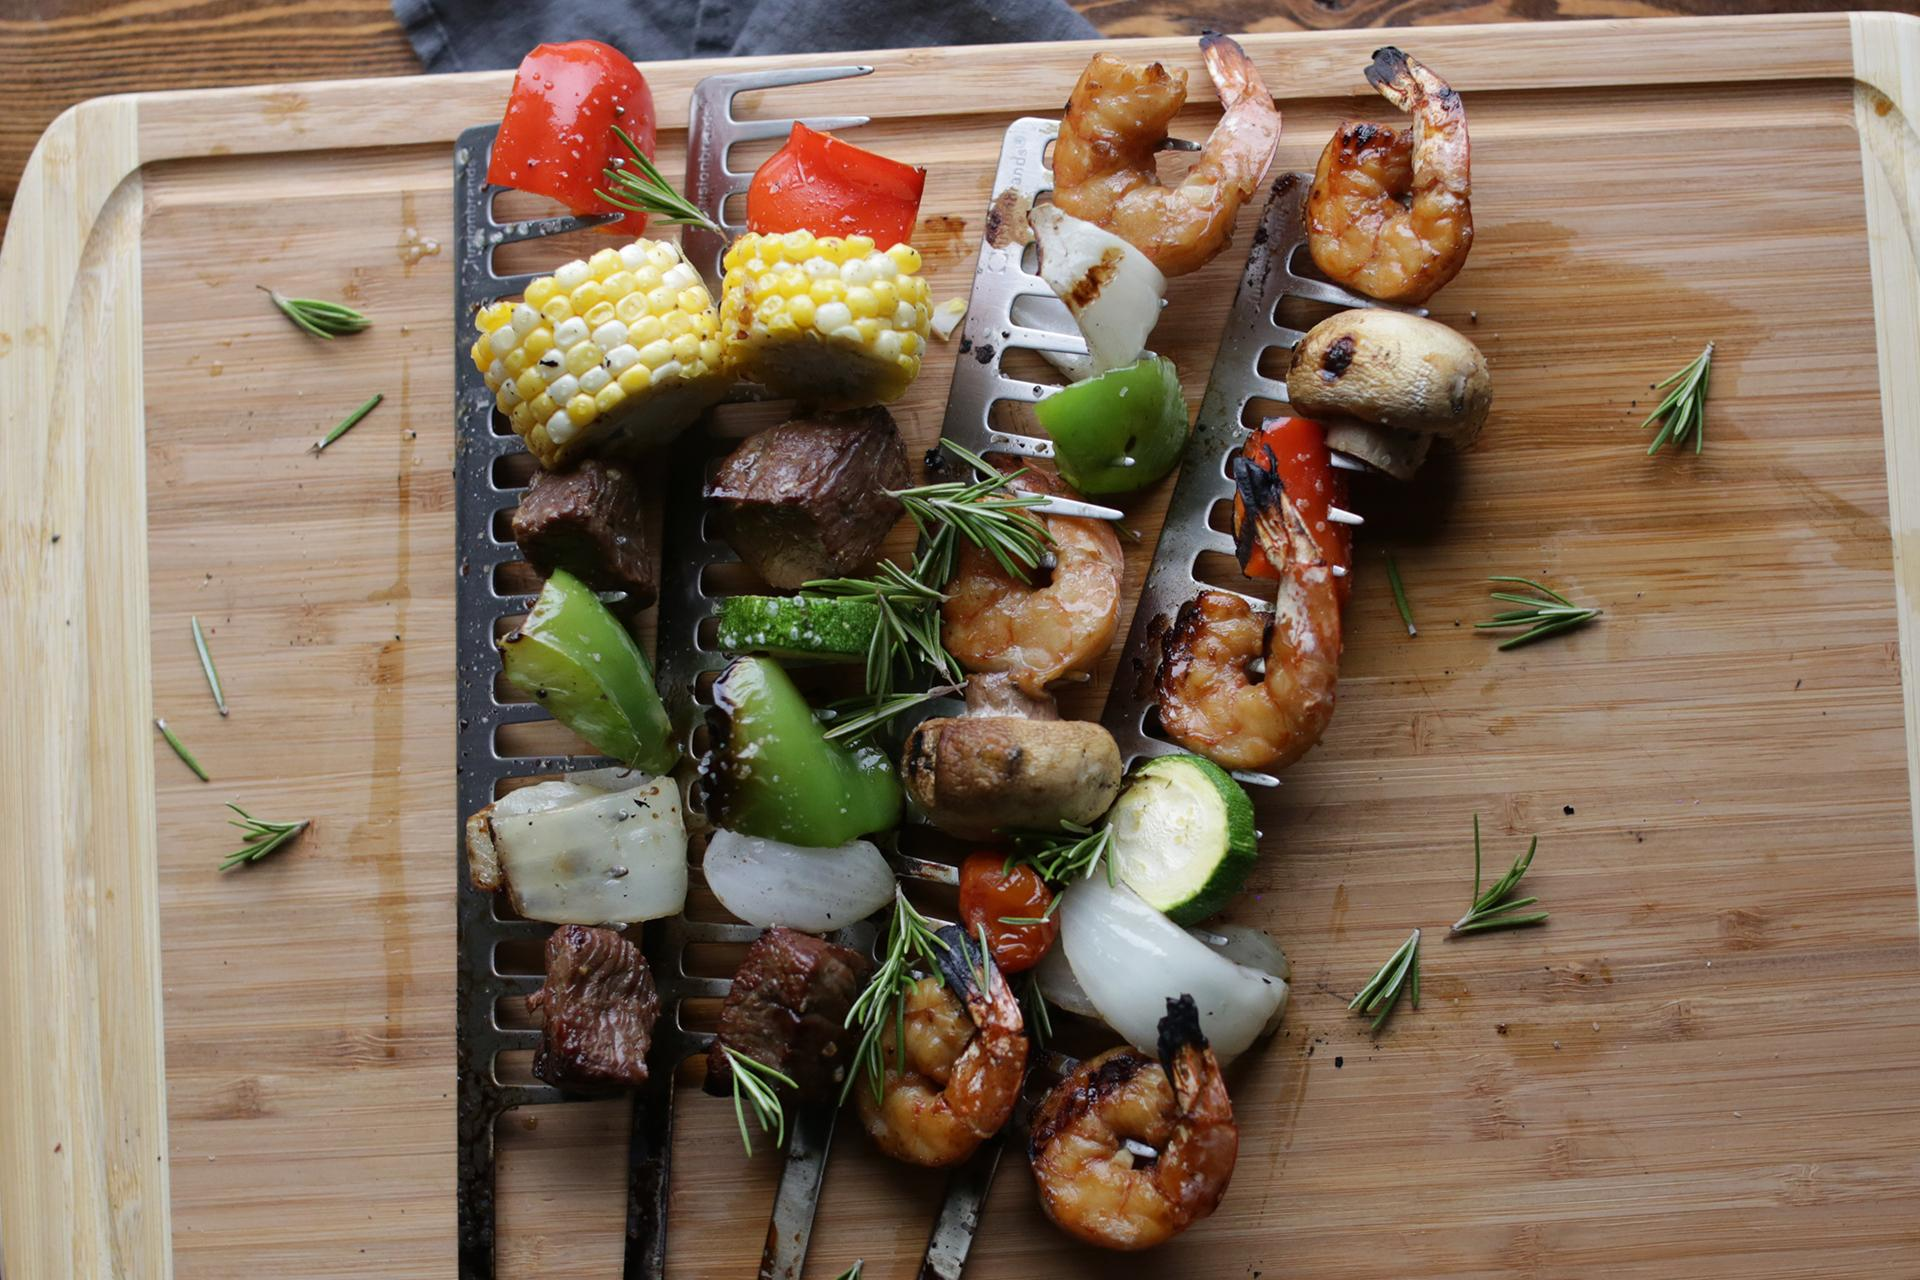 Grilled Beef and Shrimp Kebabs with Veggies